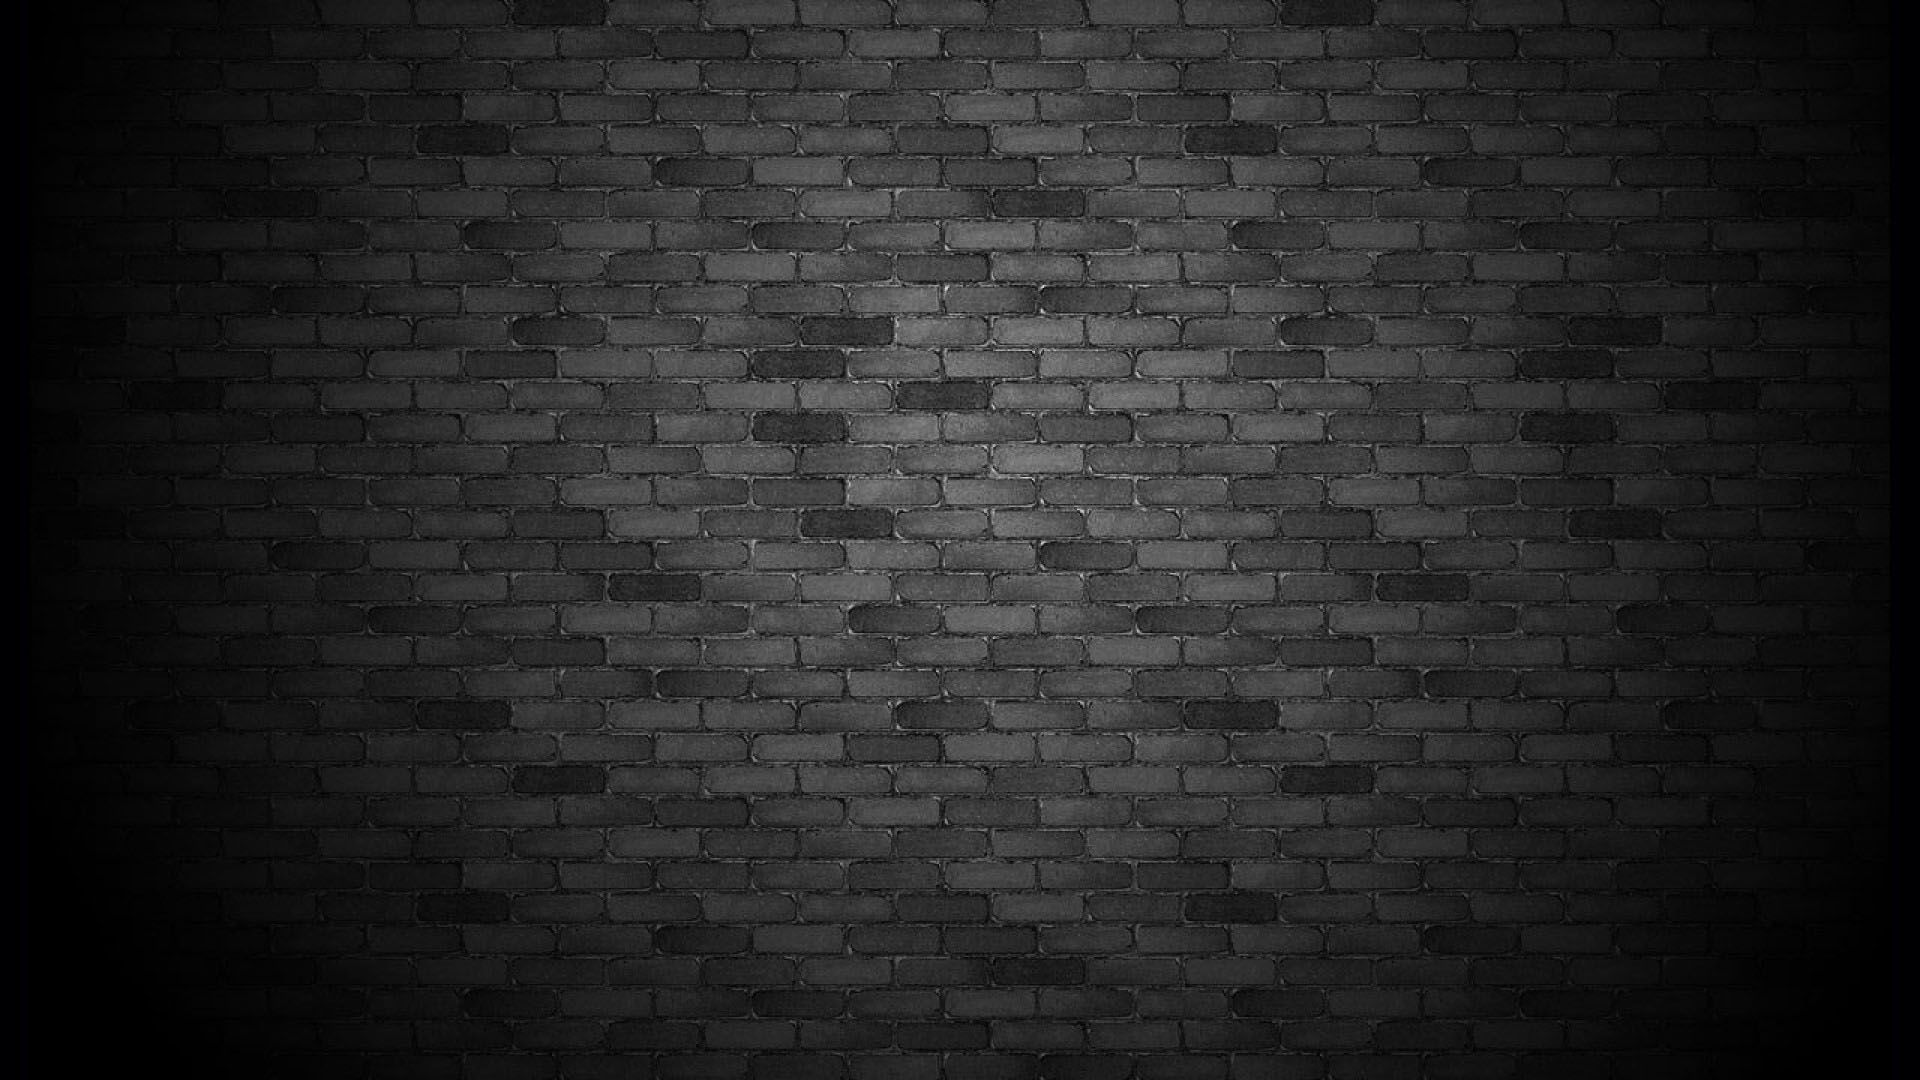 1920x1080 Home Design Brick Wall Black And White Wallpaper Subway Tile Baby